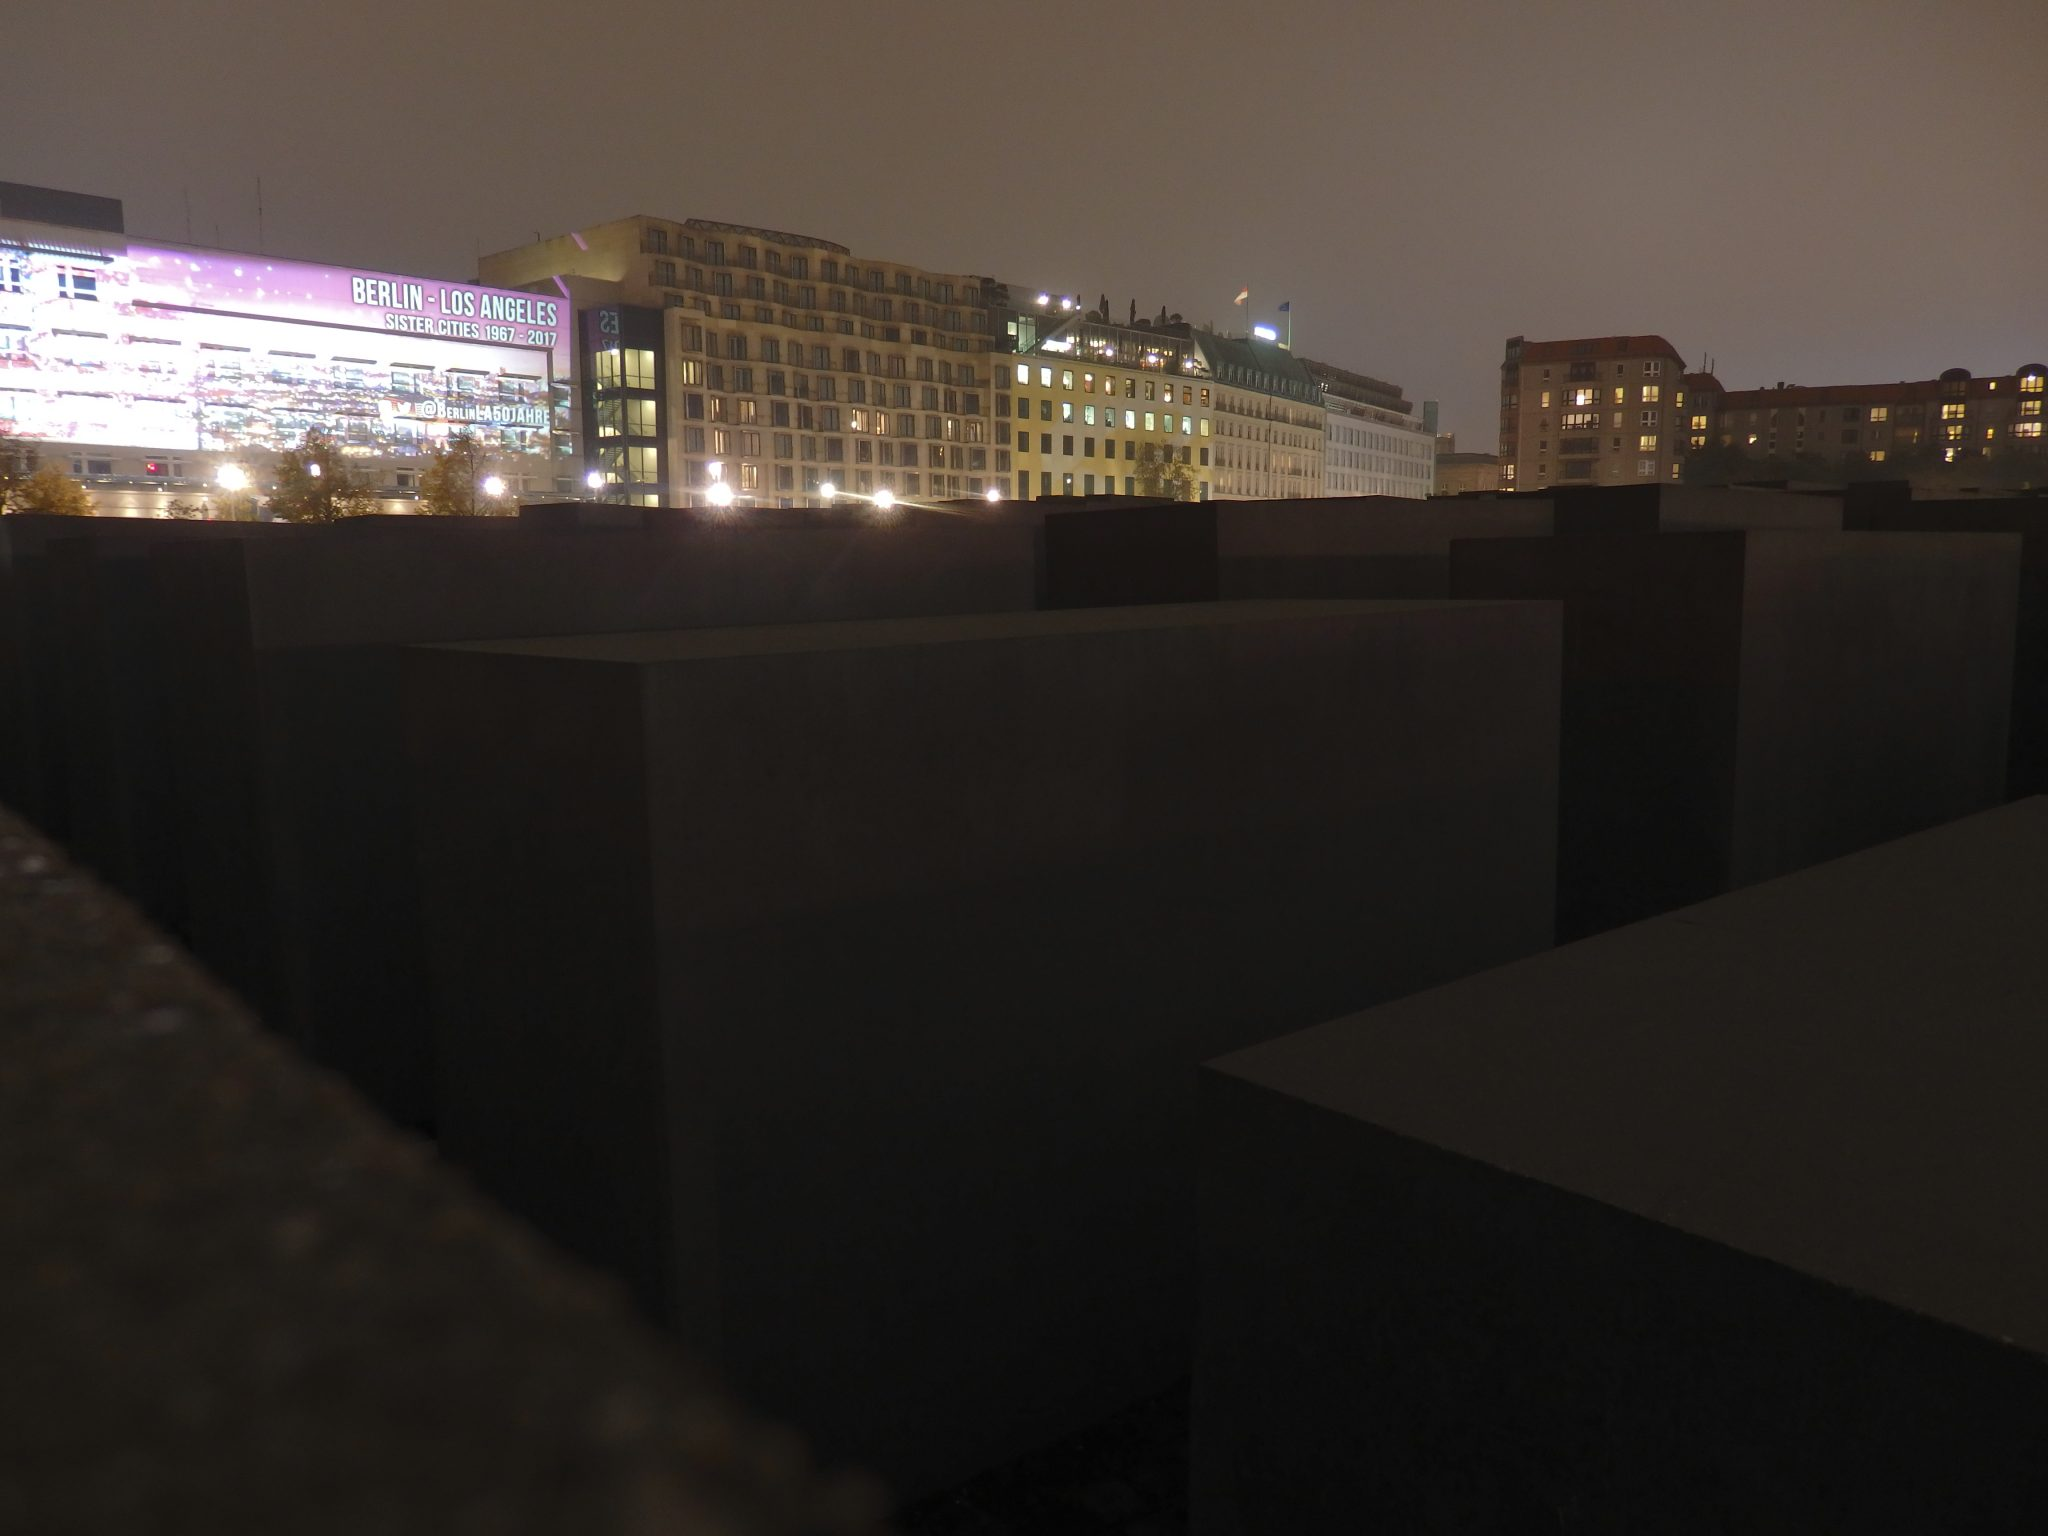 A portion of the Memorial to the Murdered Jews of Europe in Berlin as it looks at night